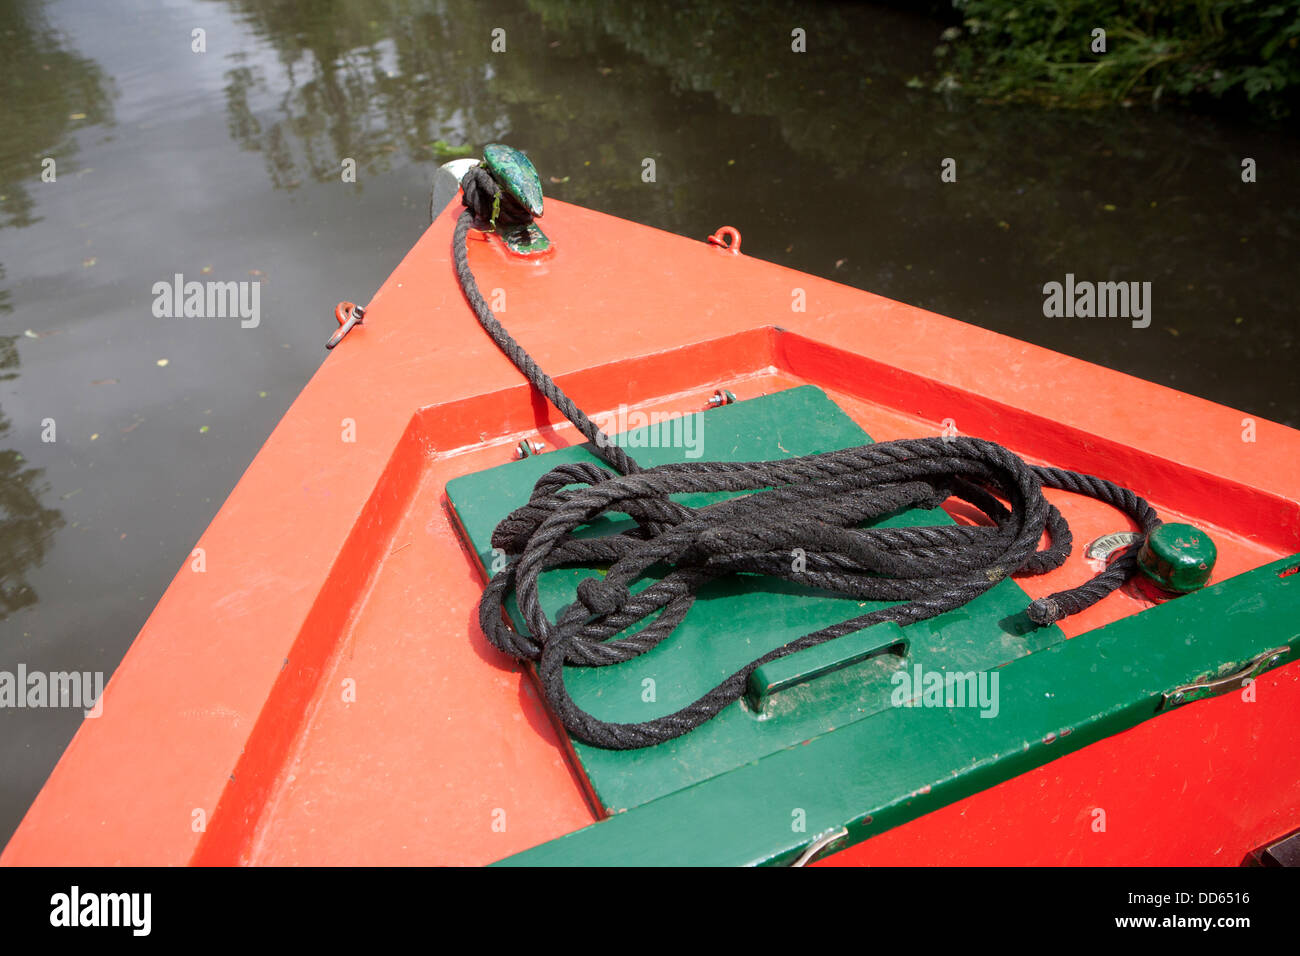 The bow of a red and green narrow boat cruising on a canal - Stock Image